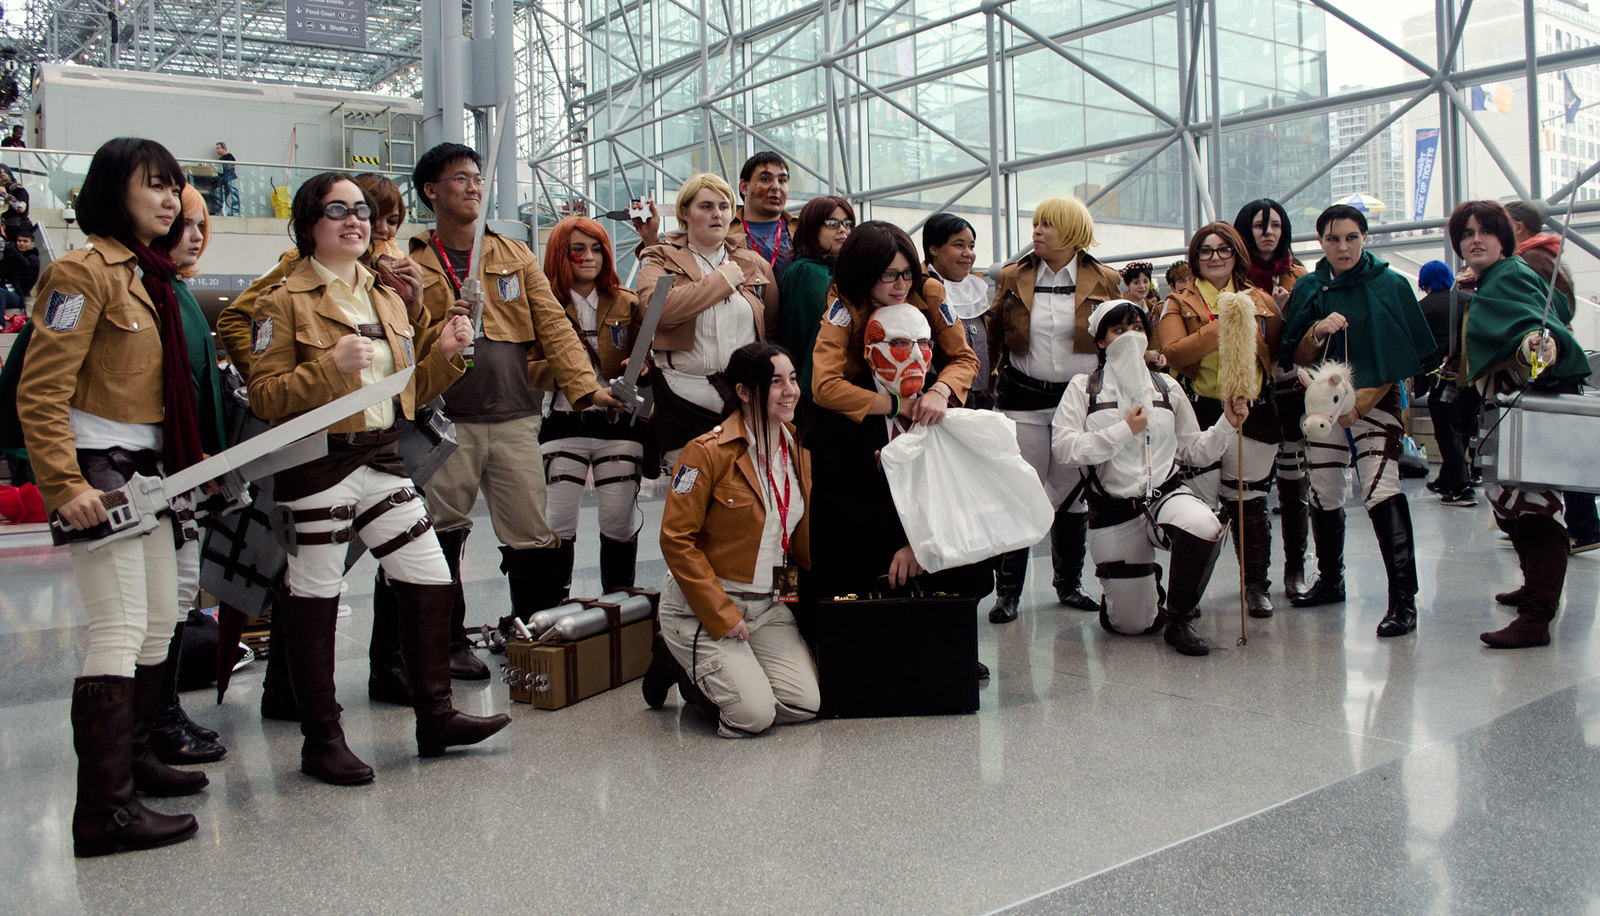 Attack on Titan Cosplay Group NYCC 2013